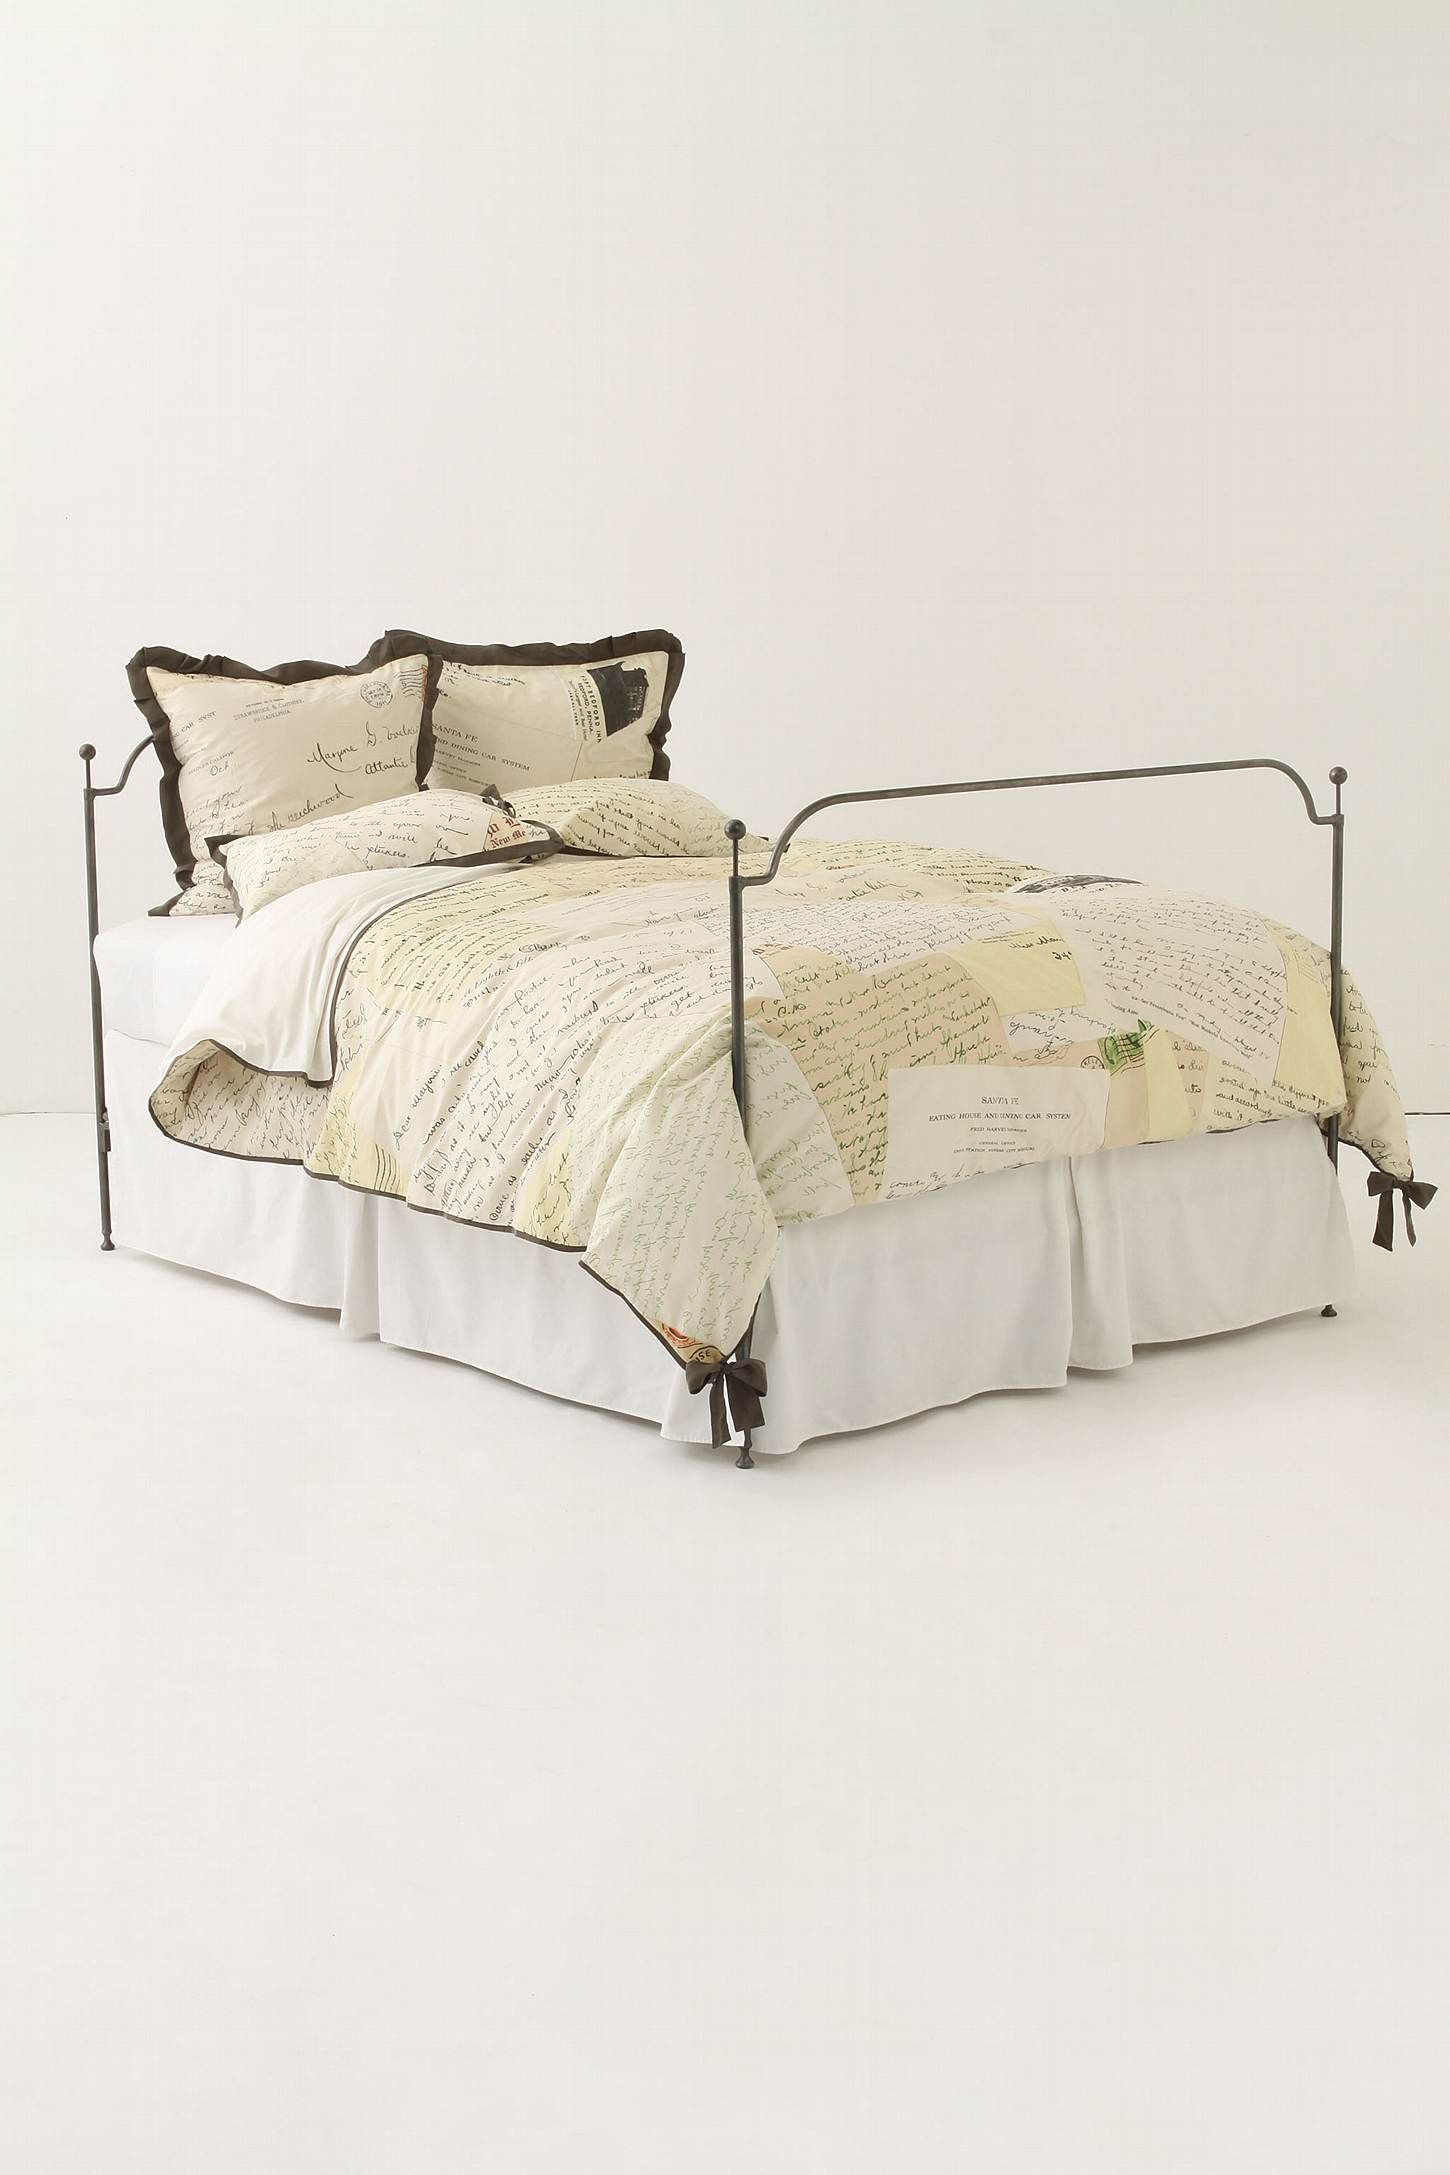 I would give up food for a day for this bedding. Price wise, I would have to give up over a month of food for it.